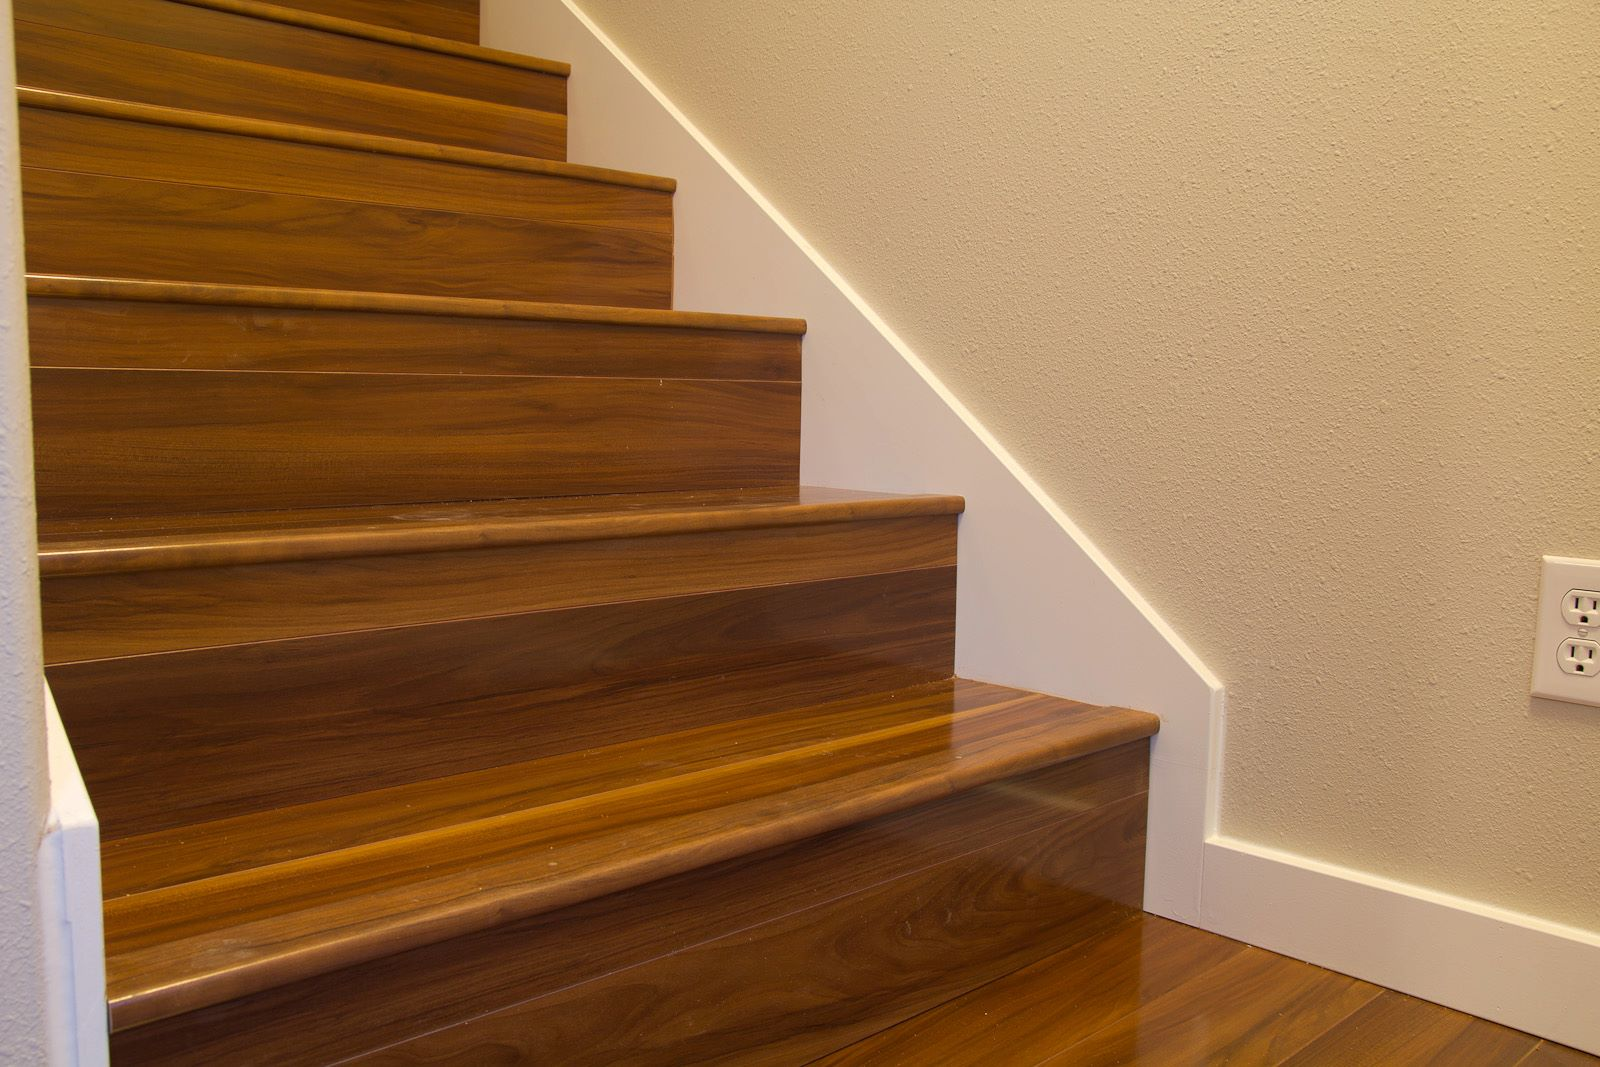 Laminate Flooring In Stair Treads With Out Flush Nosing